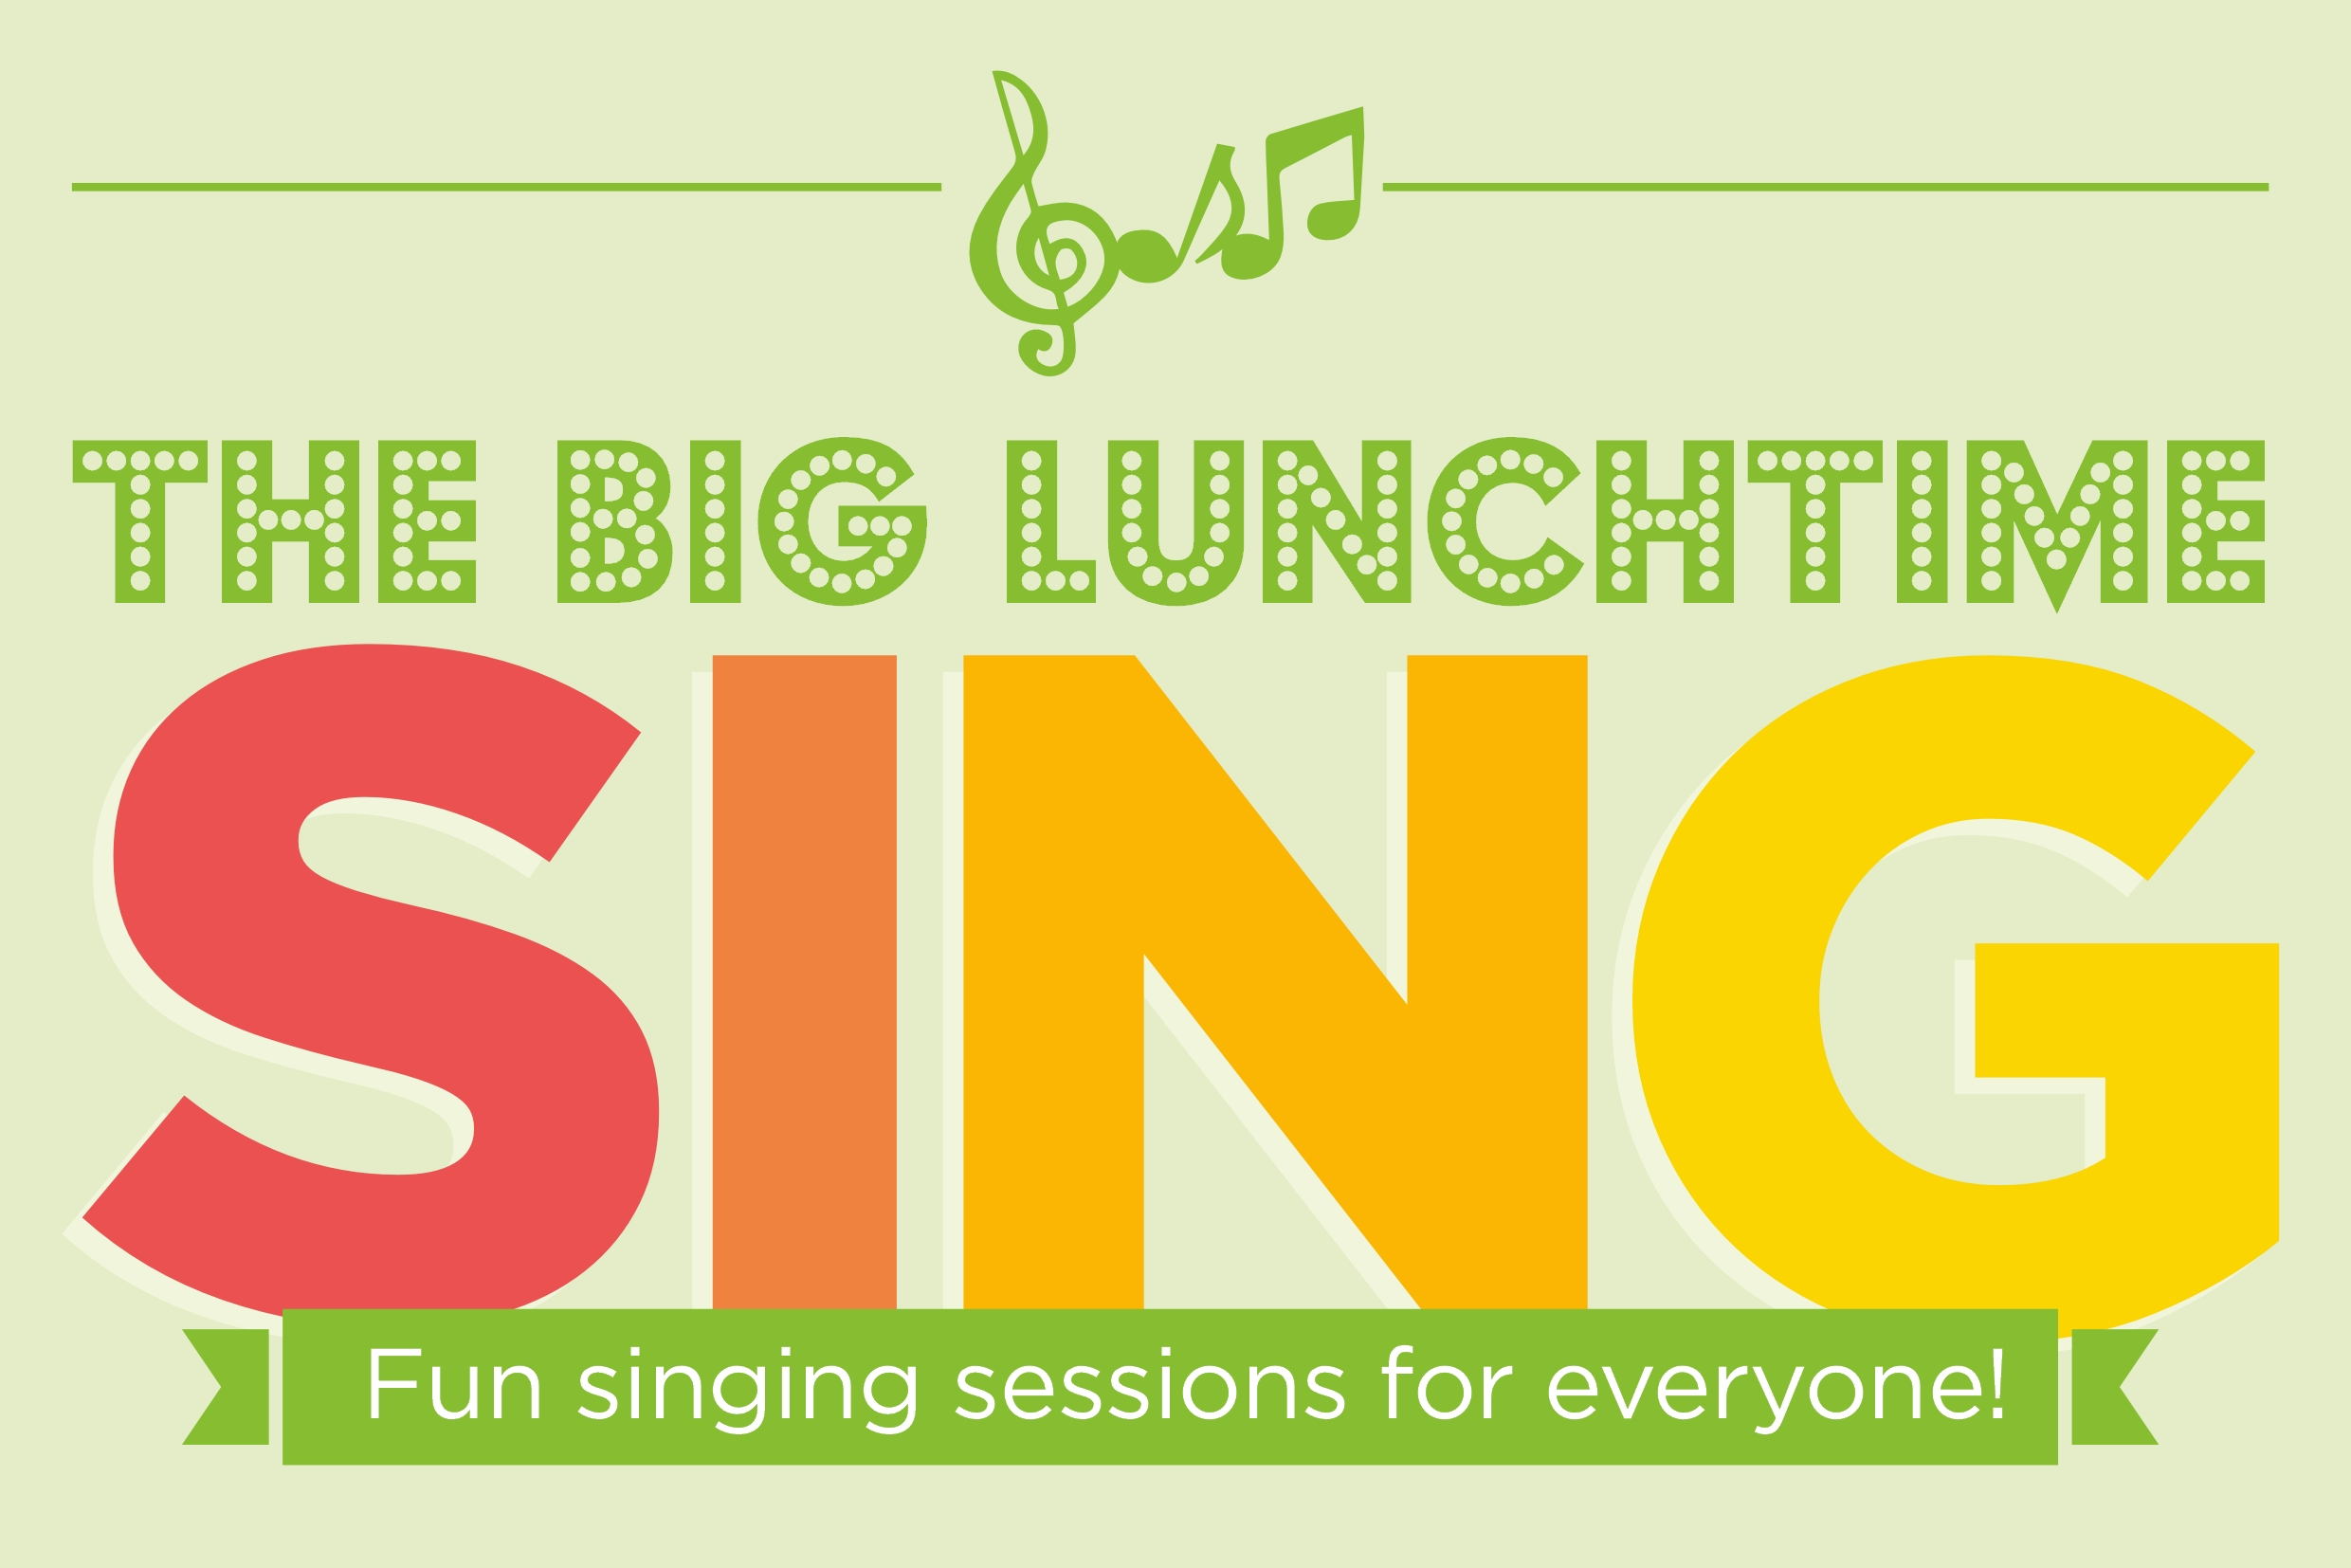 The big lunchtime sing graphic